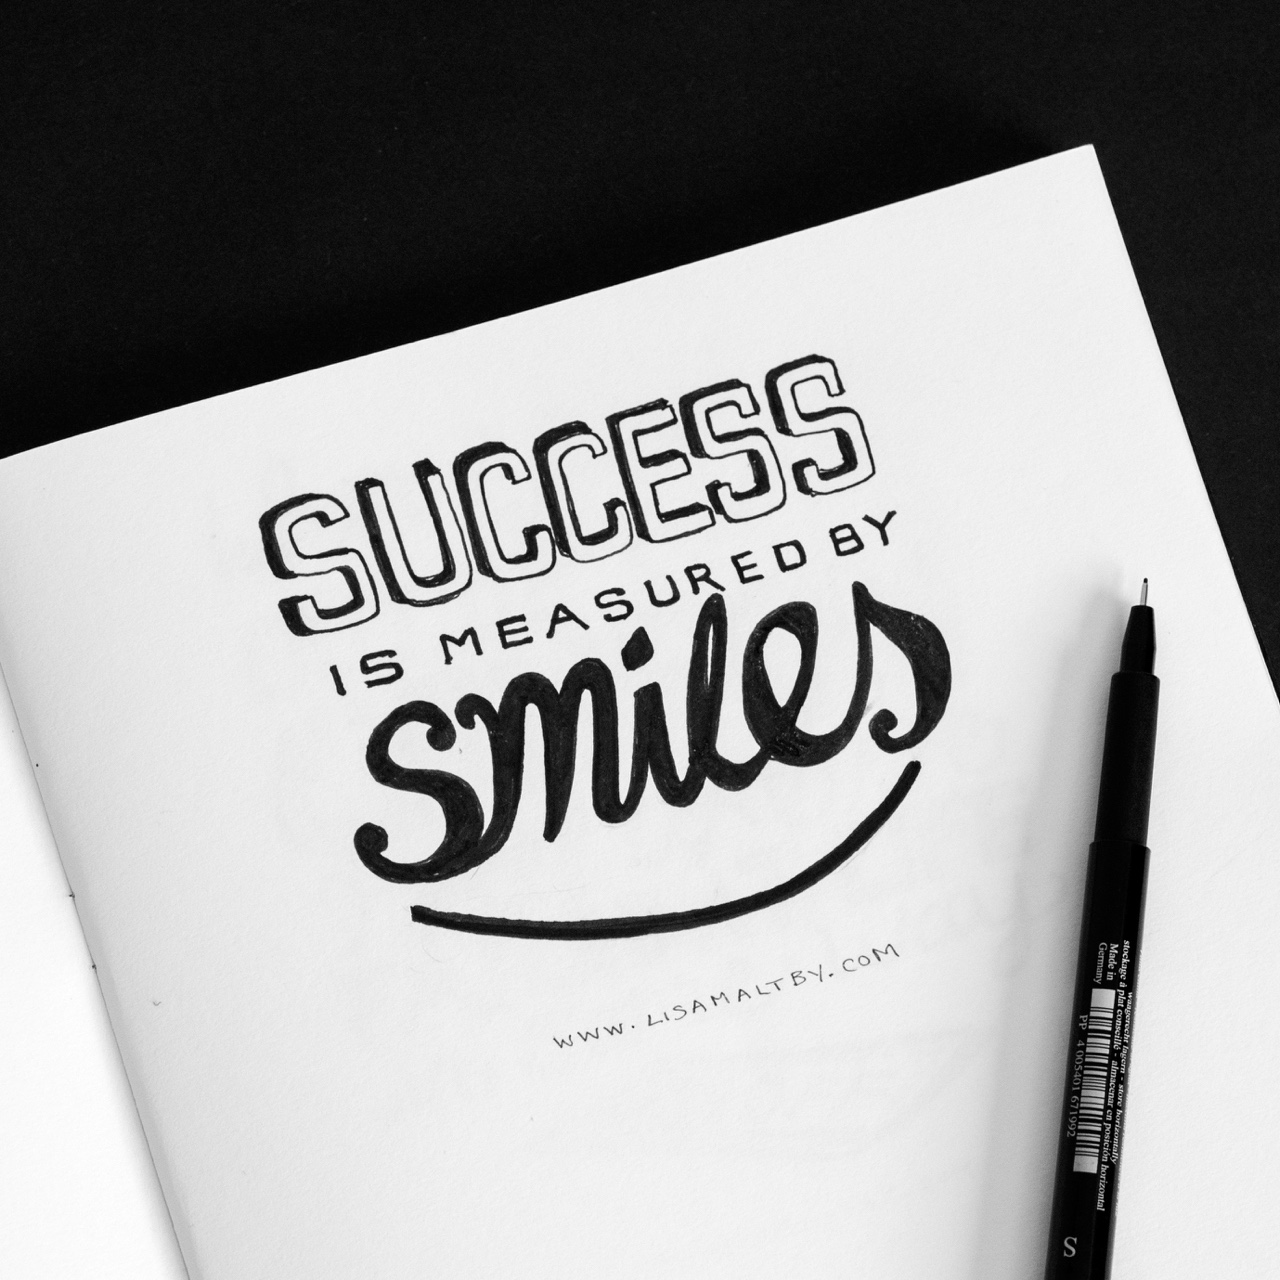 Success is measured by smiles 😊   www.lisamaltby.com